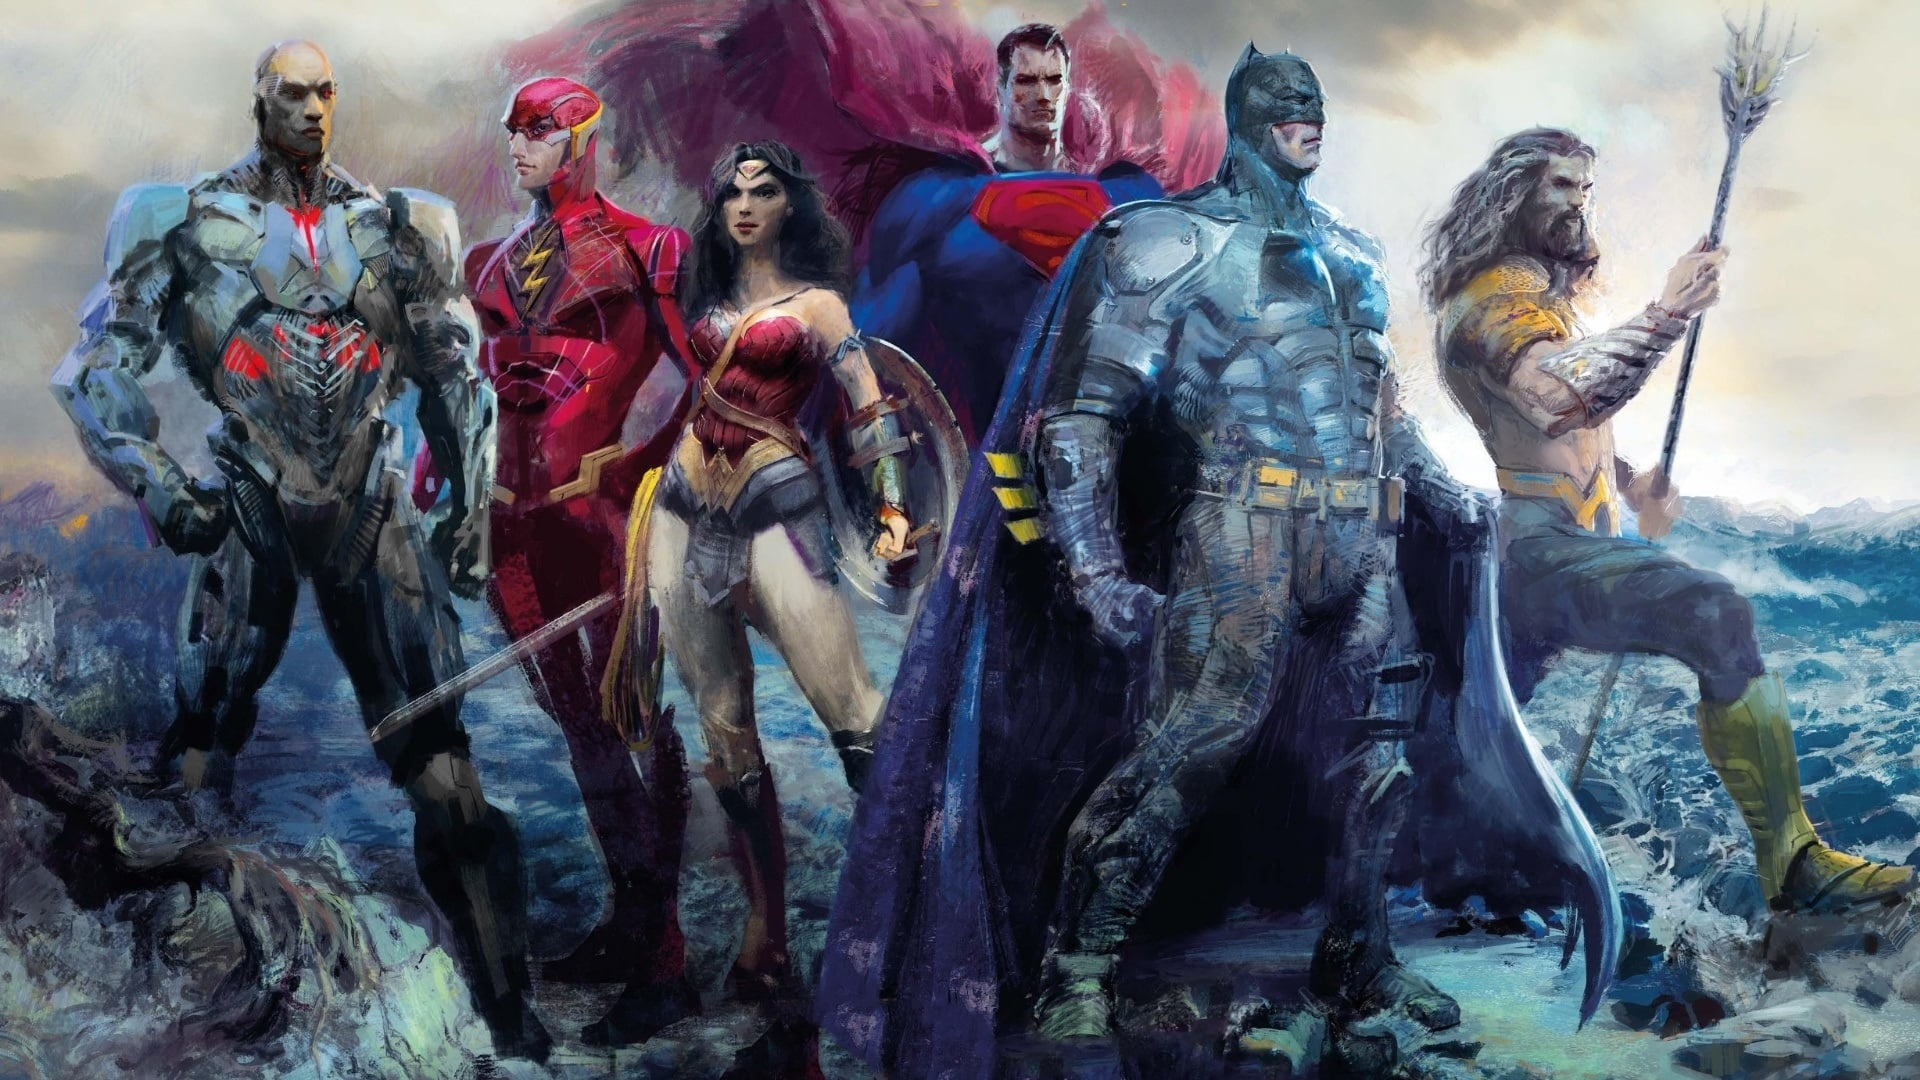 Justice League windows wallpaper